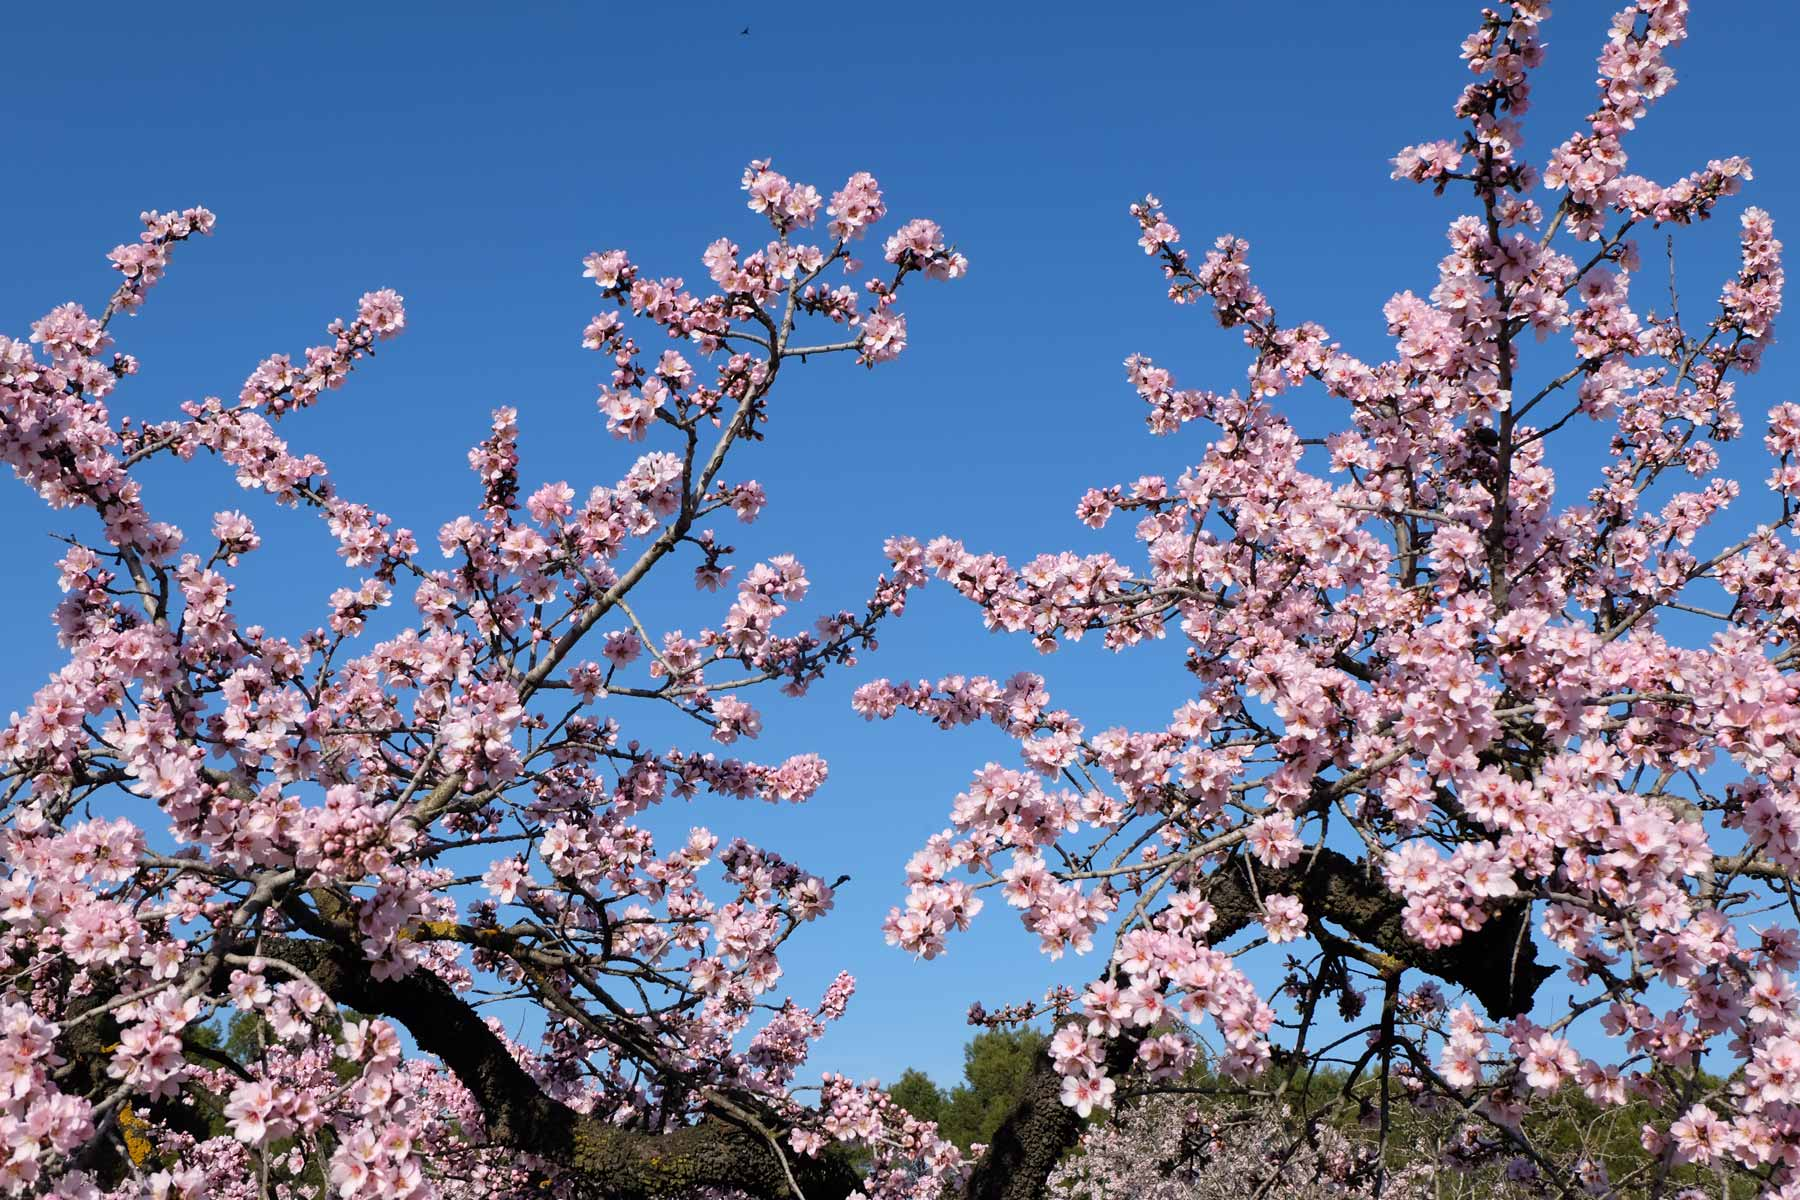 Pink flowers blossoming in the almond trees!